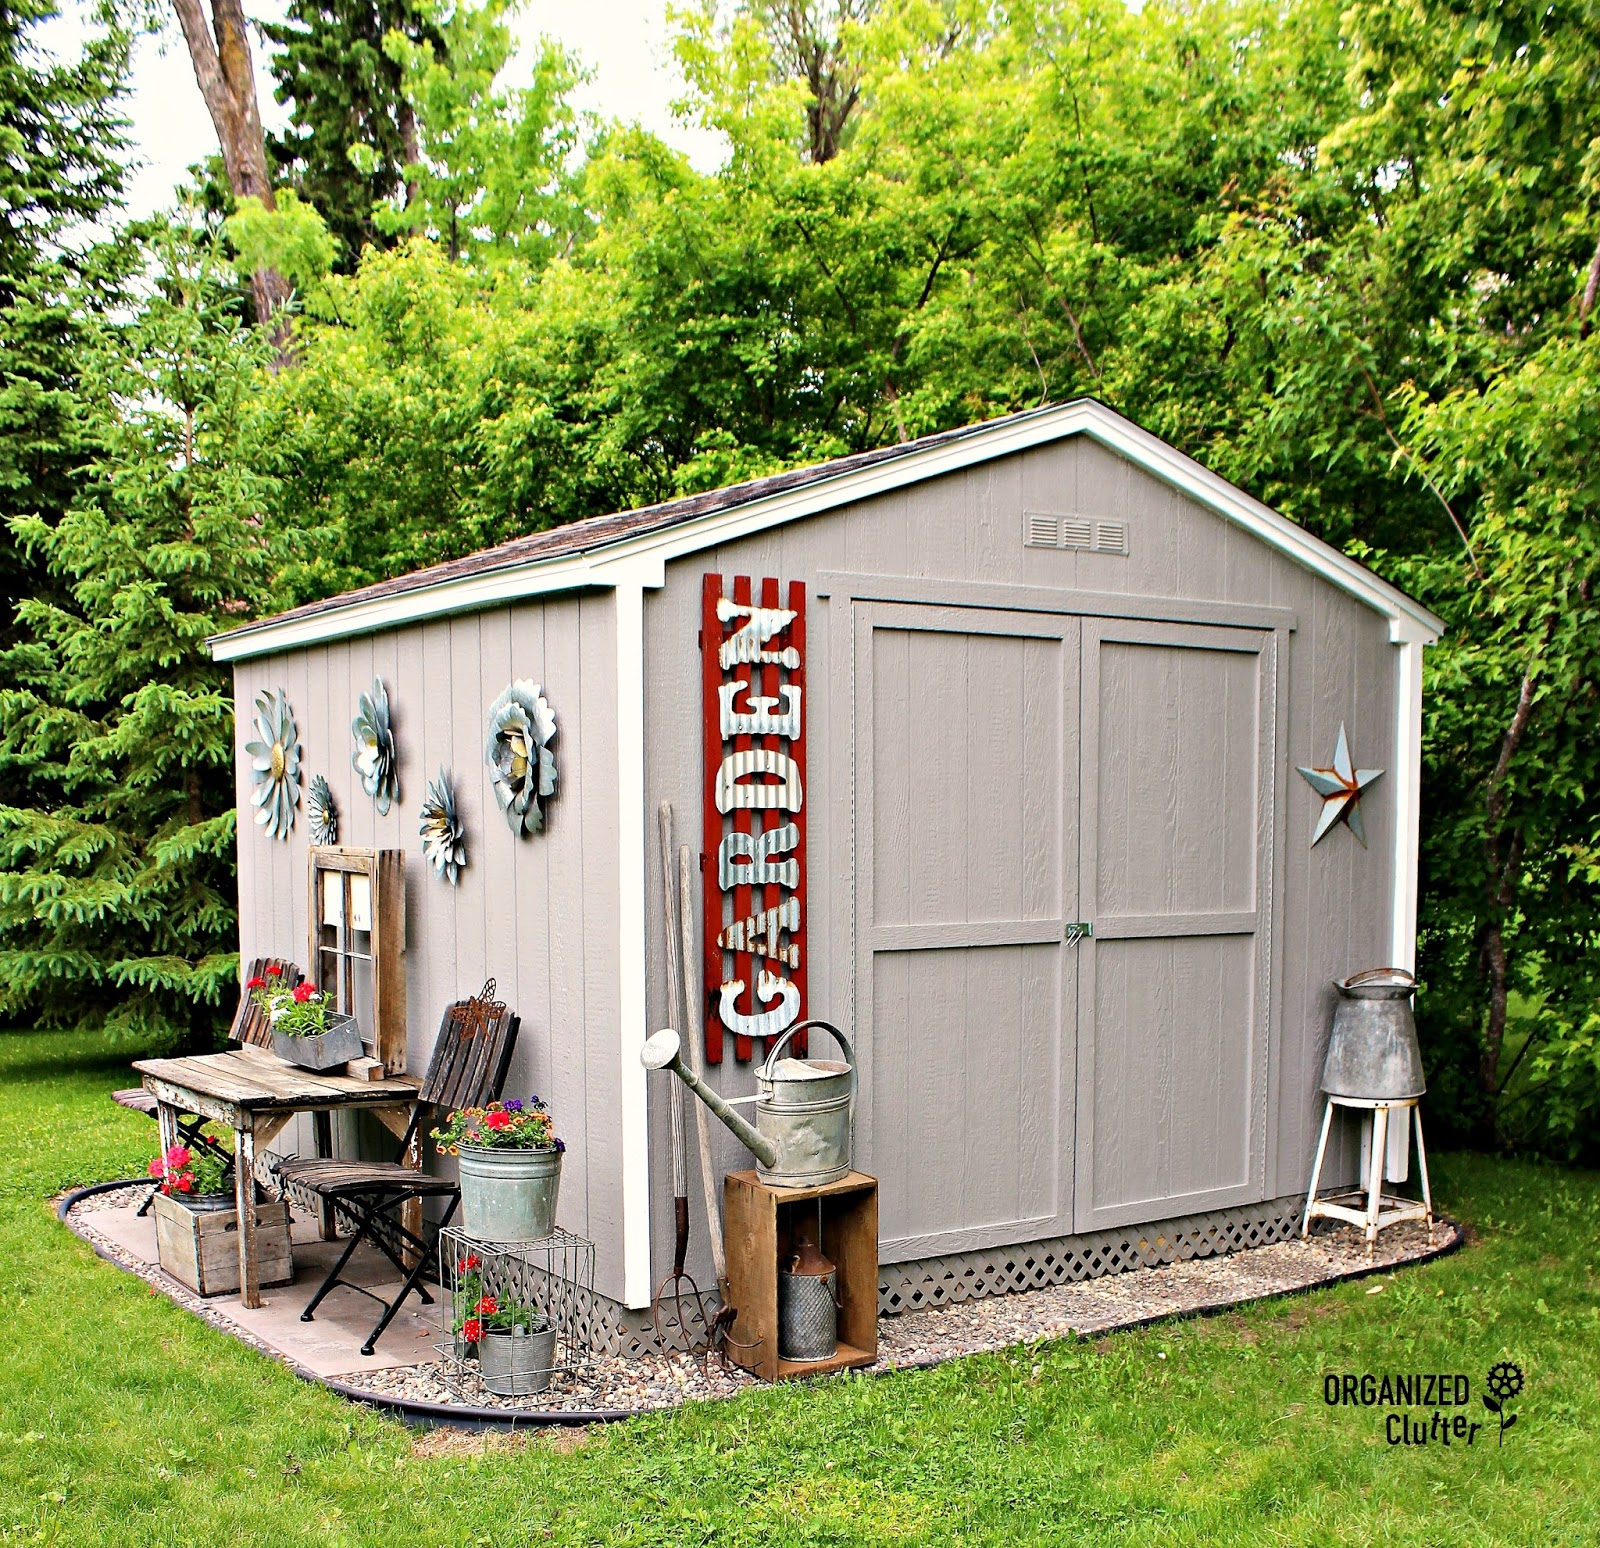 Junk Garden Ideas 2018 Edition: My New Junk Garden Shed